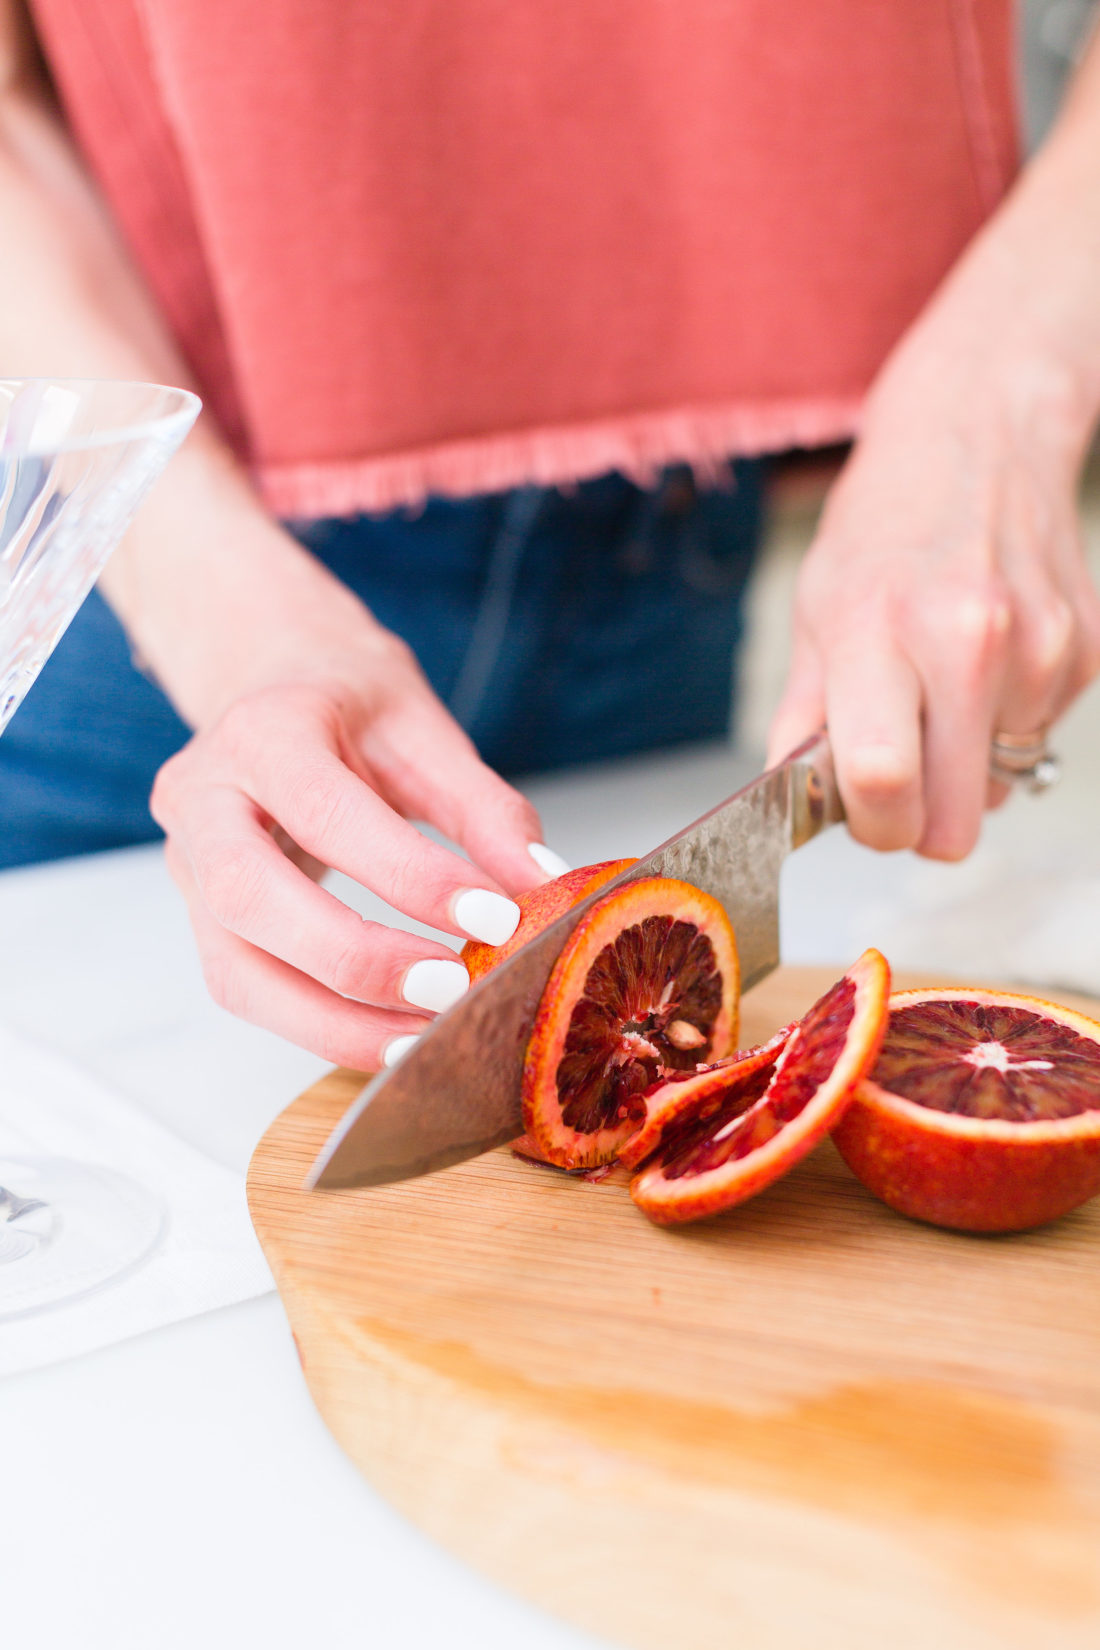 Eva Amurri Martino slices blood oranges